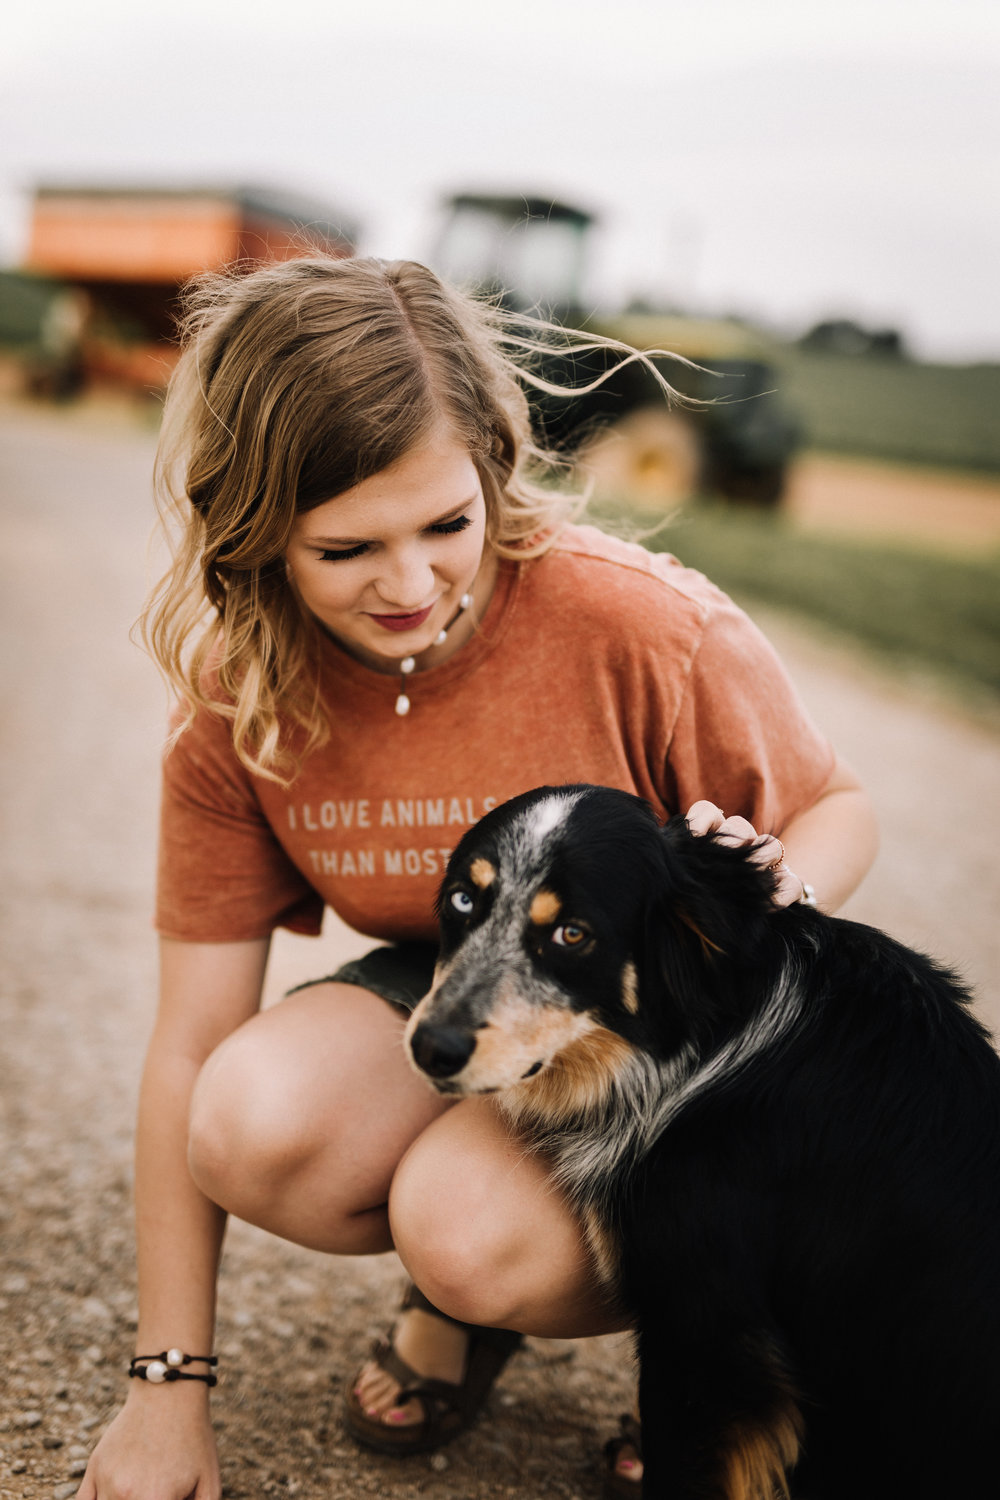 billie-shaye style photography - www.billieshayestyle.com - class of 2019 - senior portrait experience - country farm creek crop land - nashville tennessee-4012.jpg